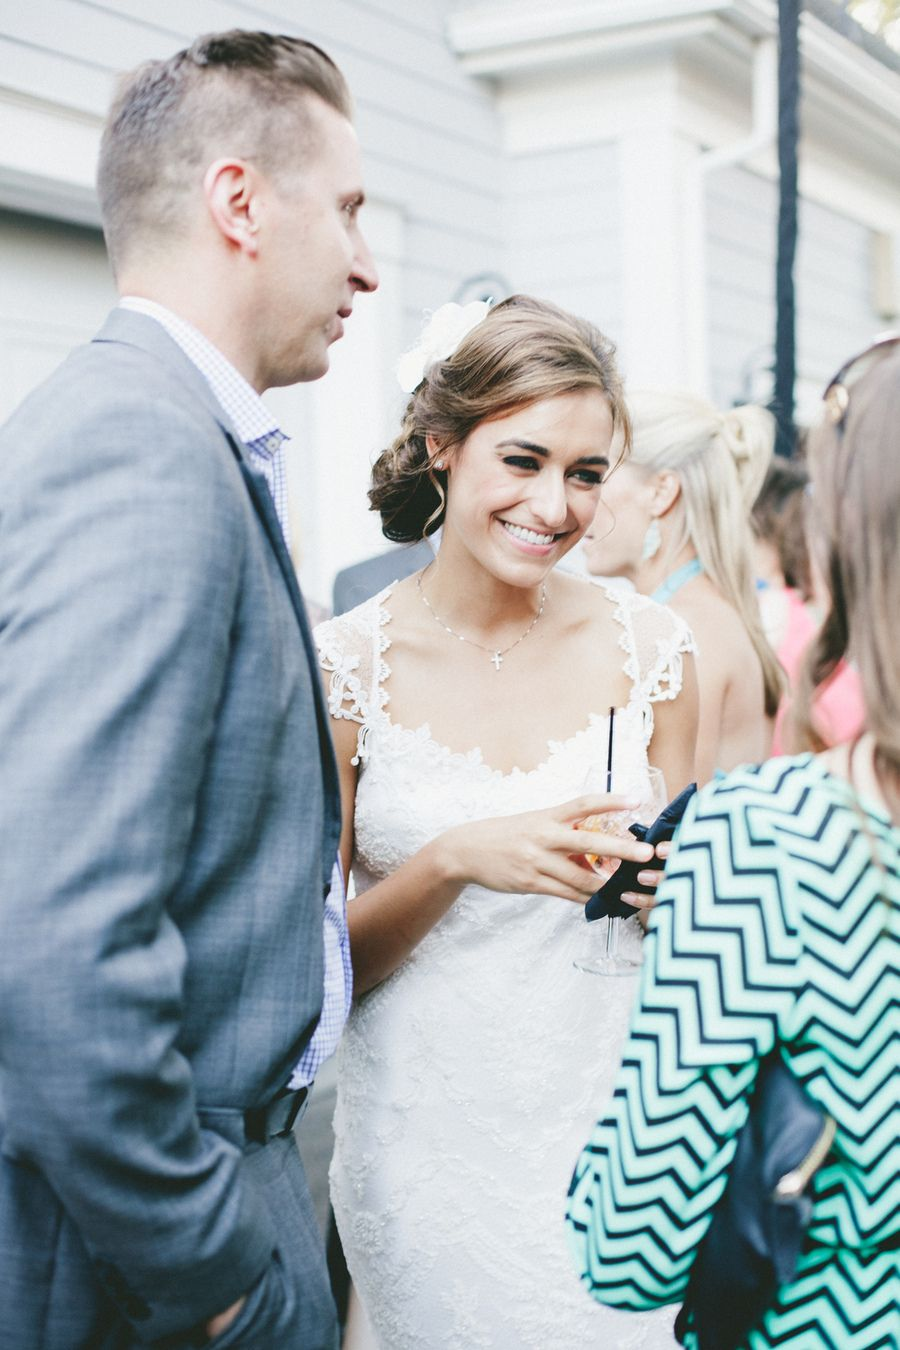 classic backyard wedding from onelove photography claire